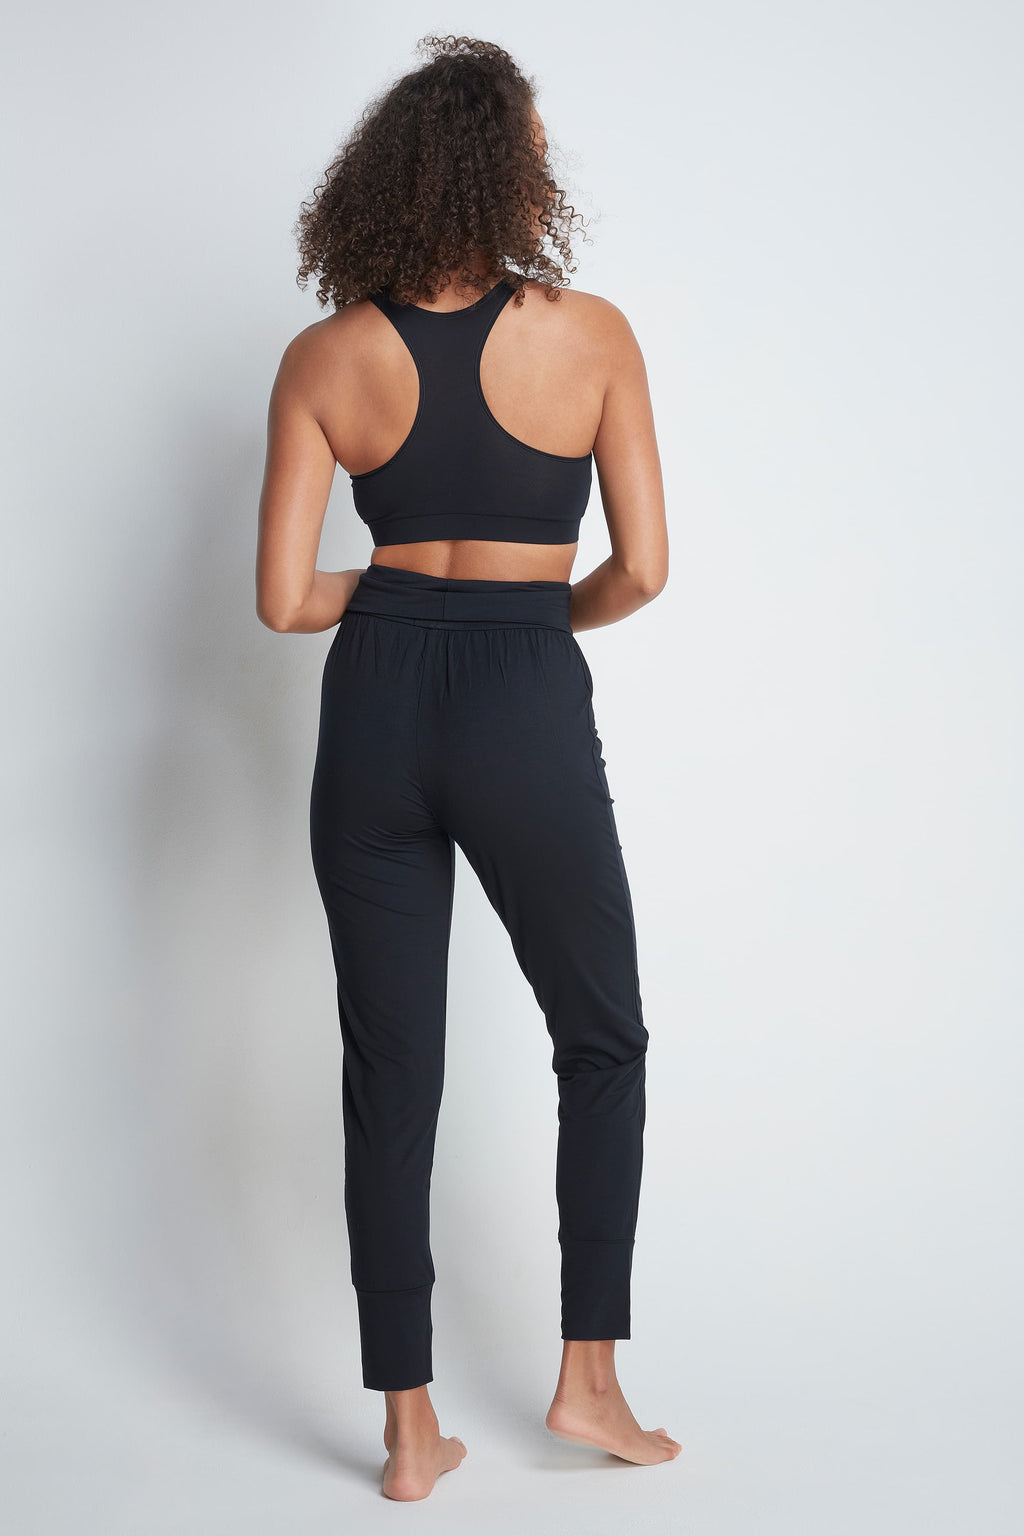 Yoga Trousers Trousers / Leggings Lavender Hill Clothing